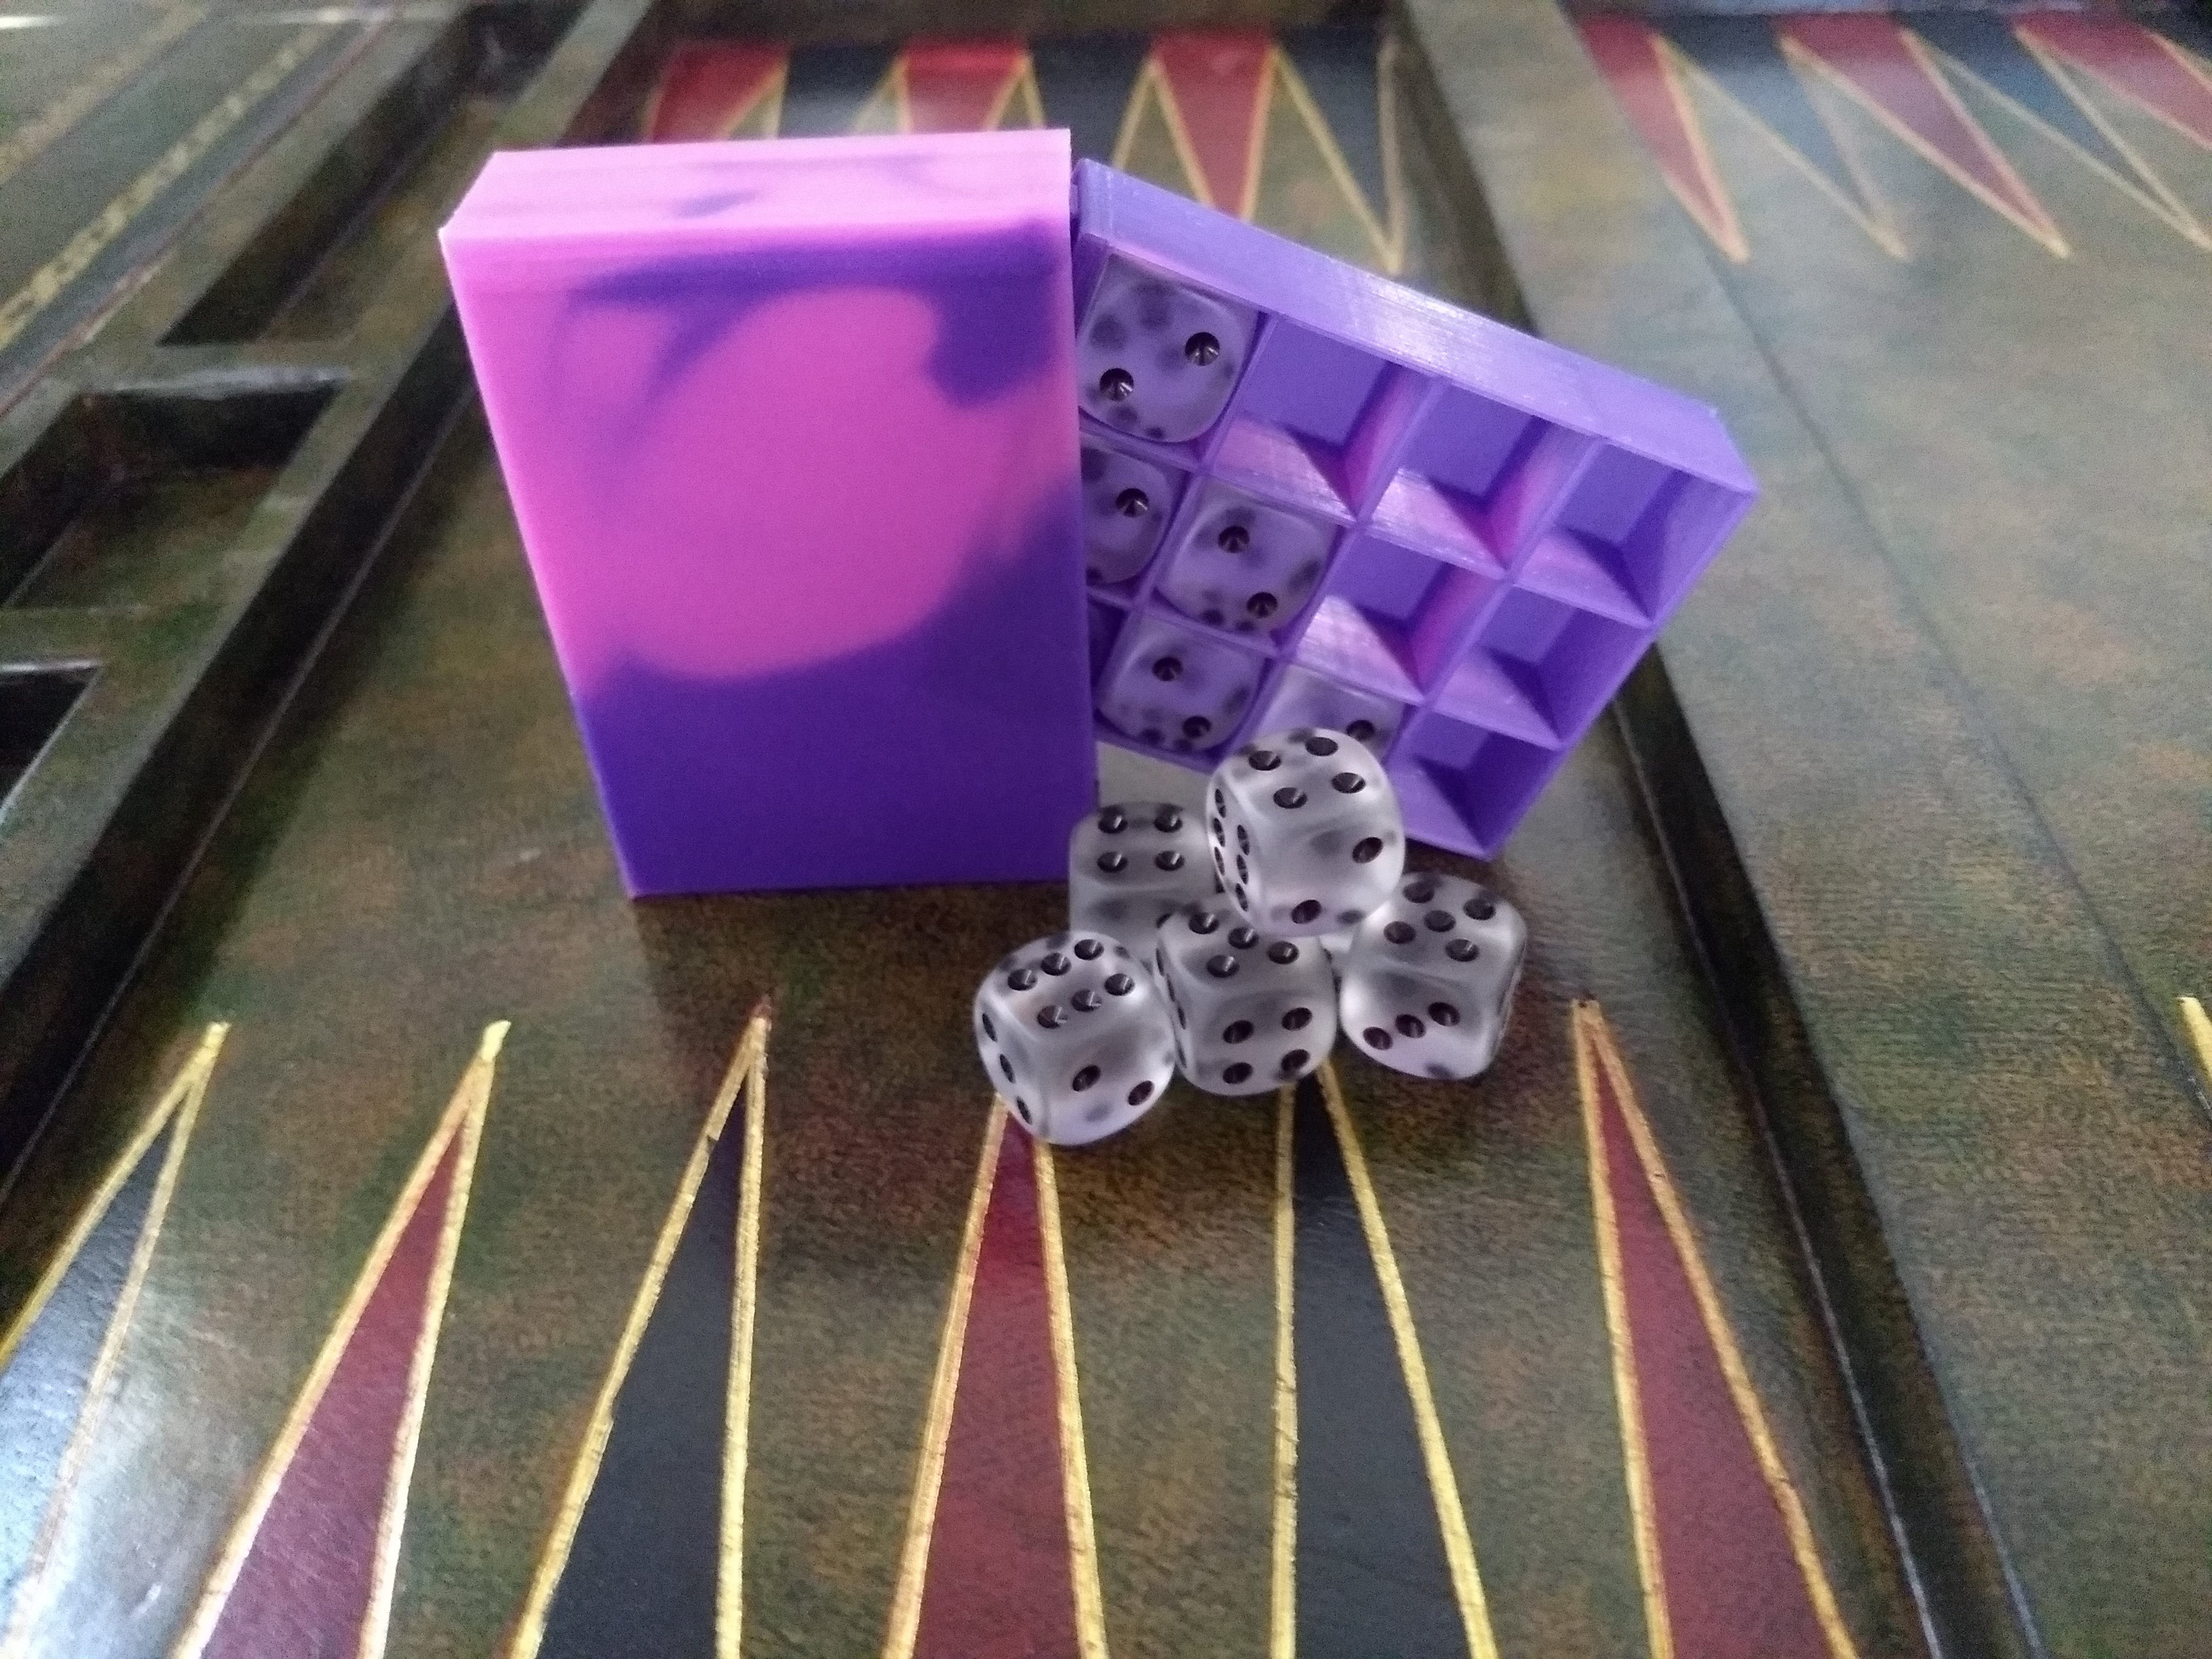 Chessex Dice Box - for 16mm dice